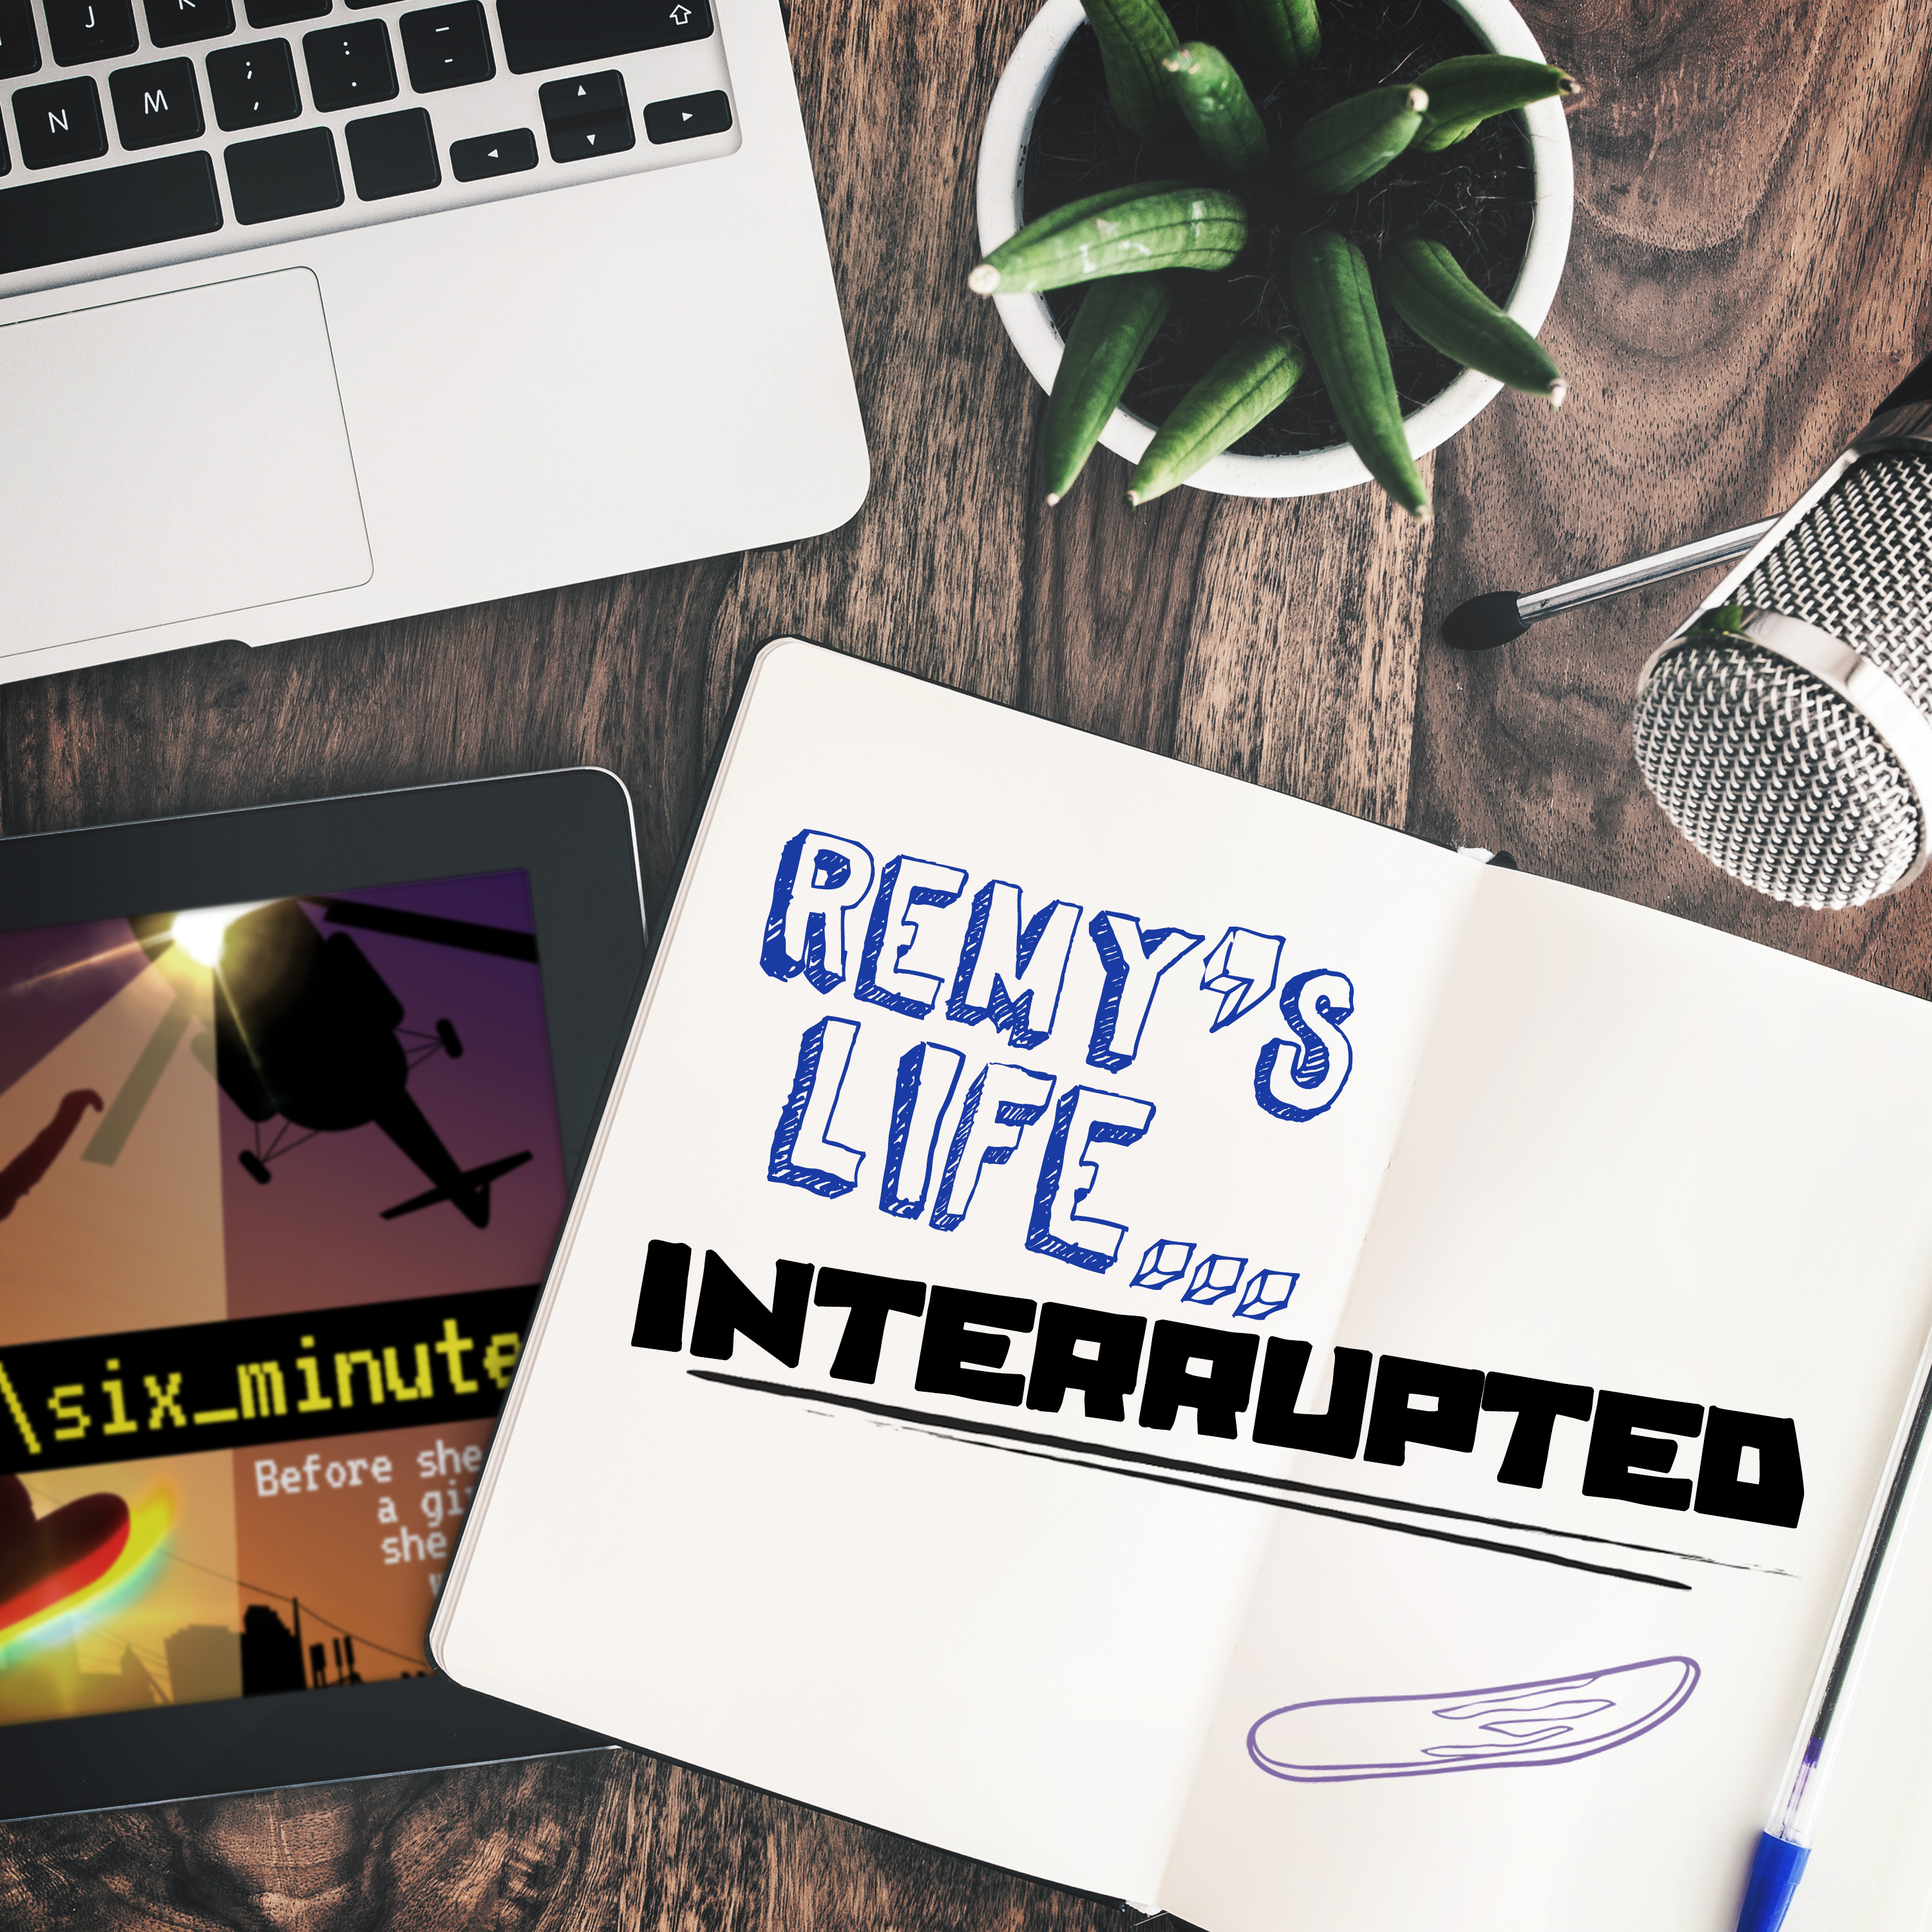 Remy's Life Interrupted: EP72